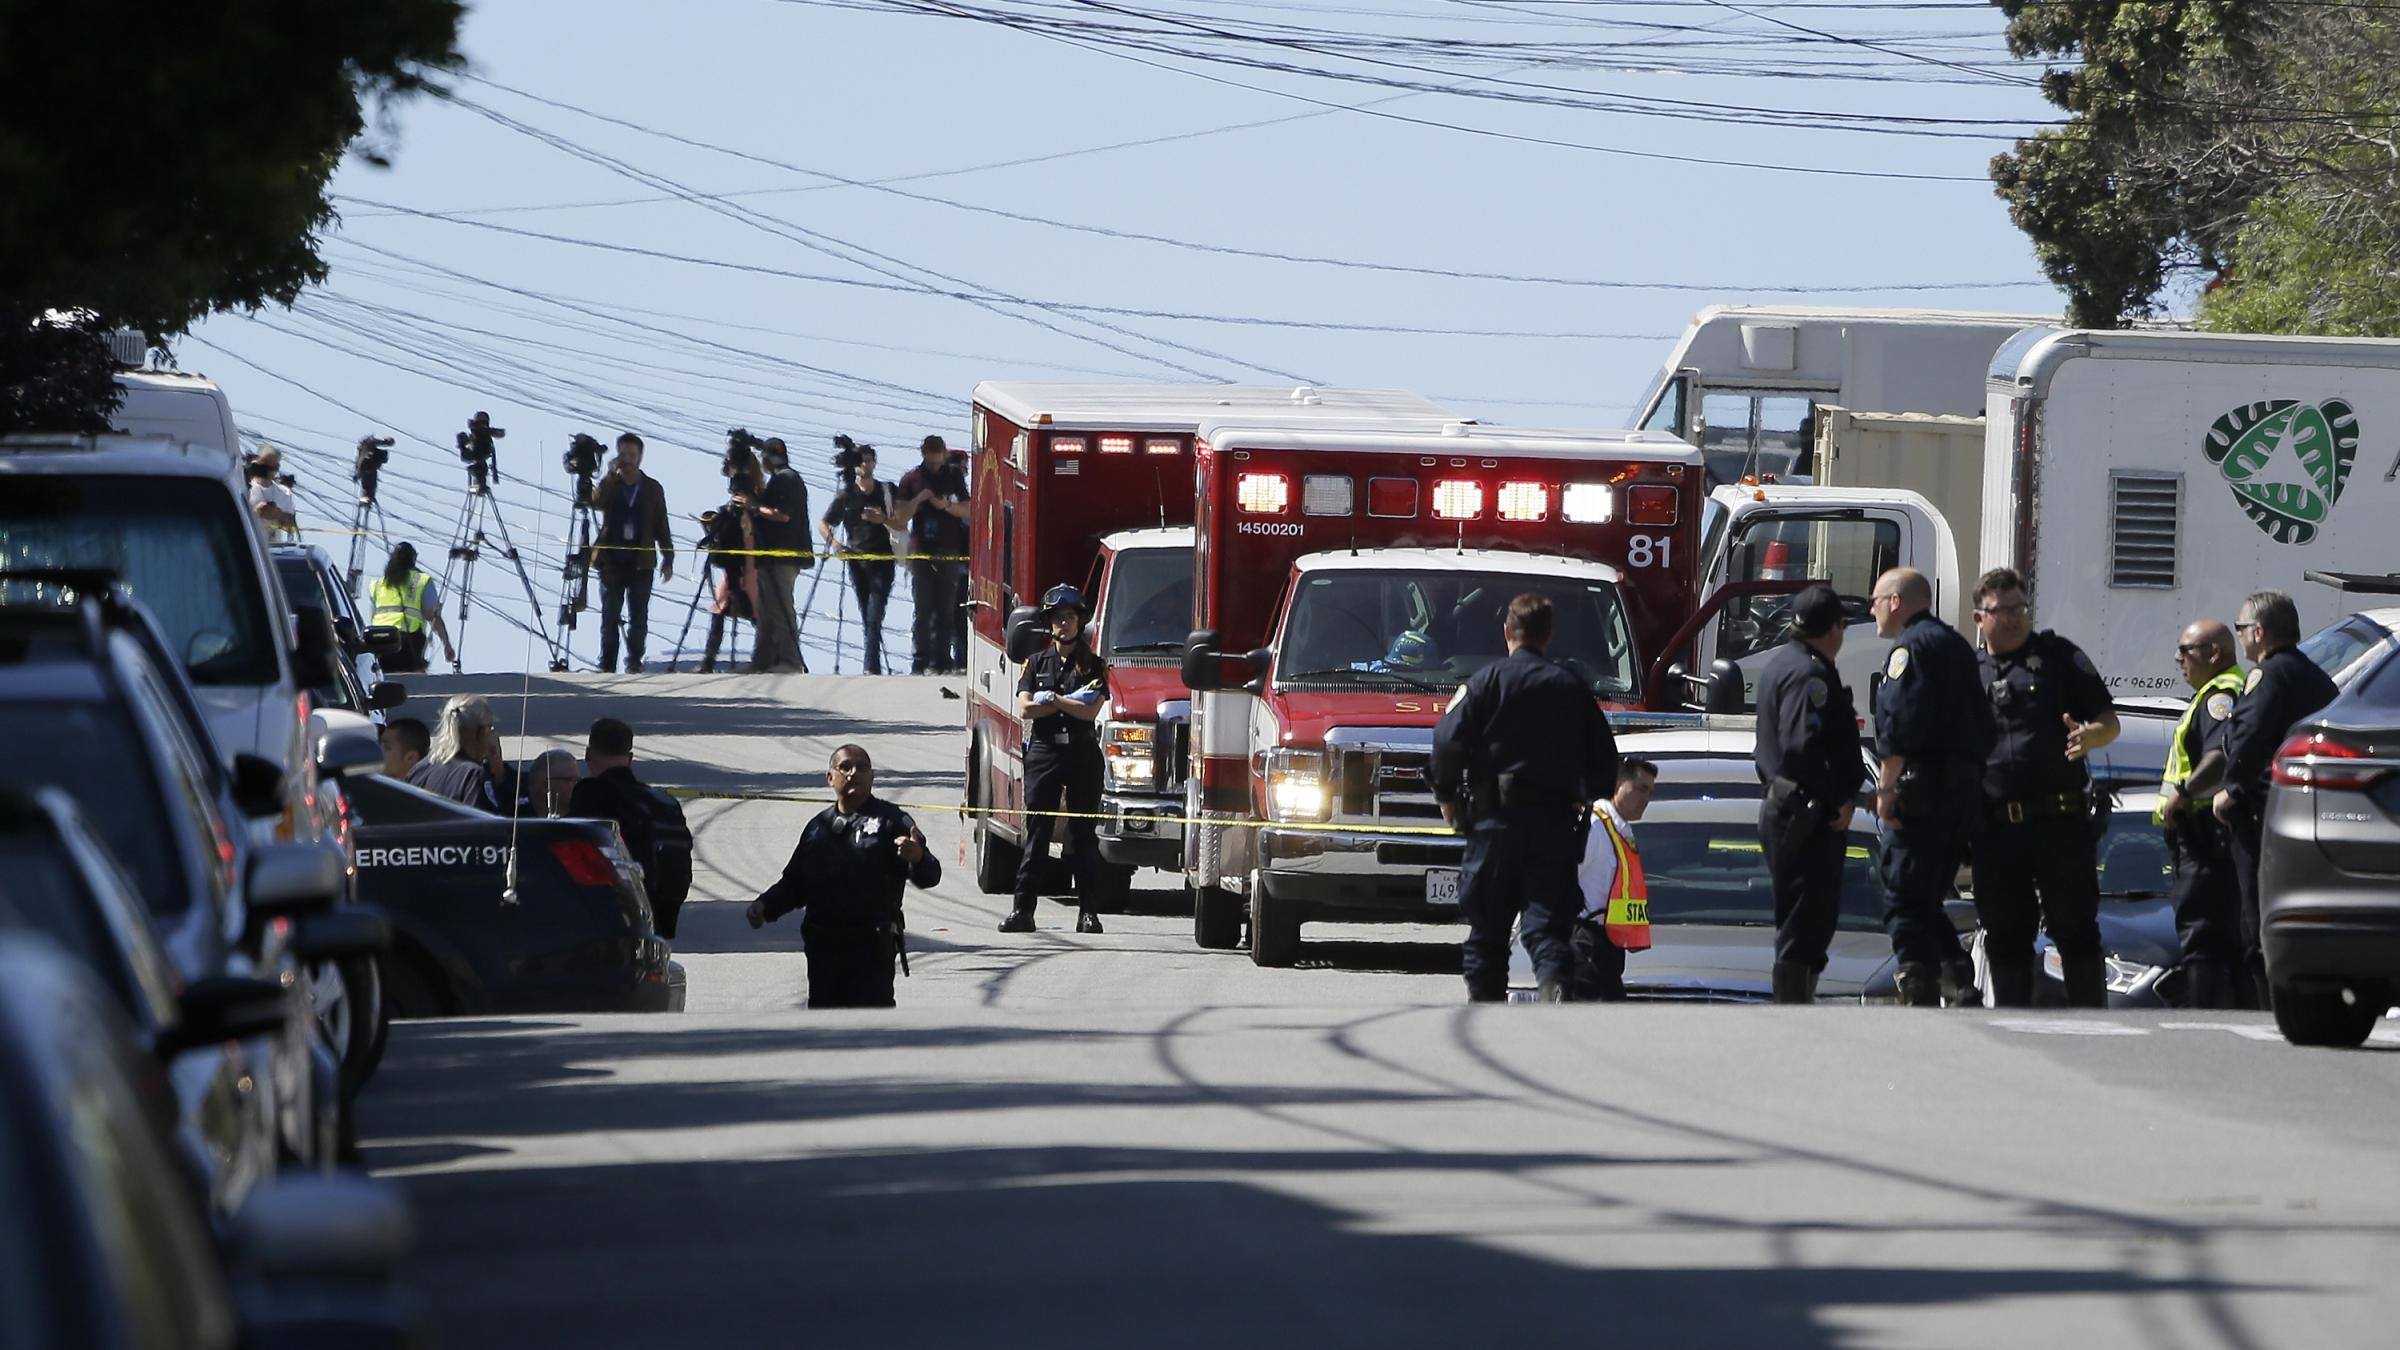 Shooting at San Francisco UPS leaves 4 dead, including gunman